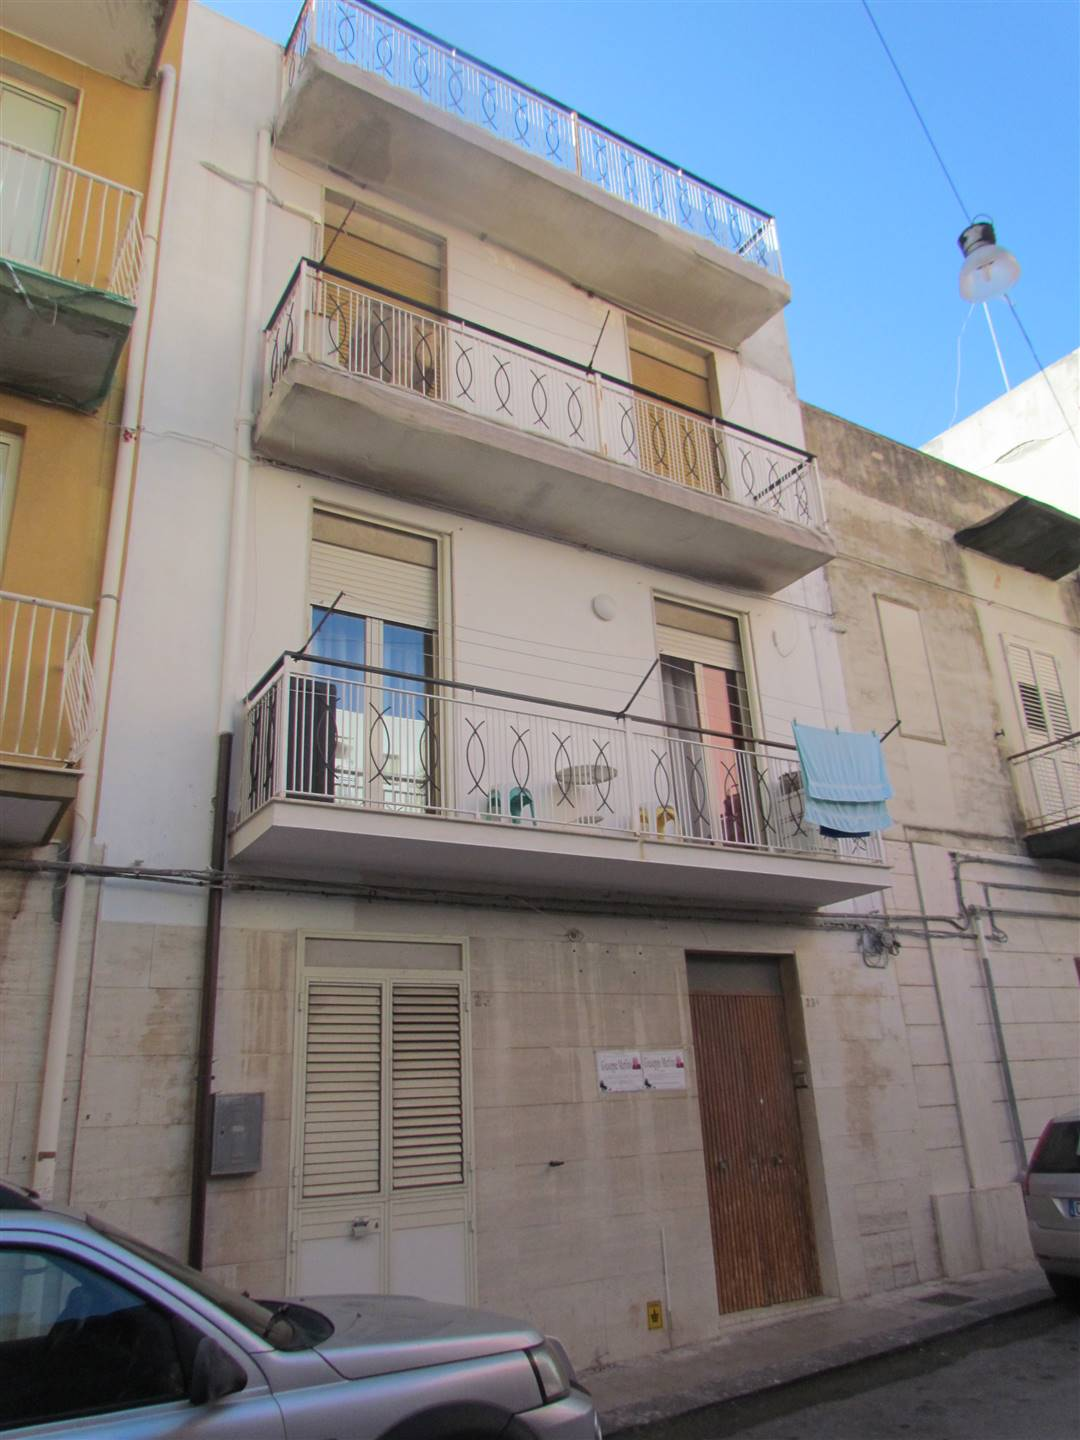 We have a 55 sqm apartment, located on the second floor with three bedrooms, kitchen and bathroom and on the third floor a terrace of 38 sqm. and a